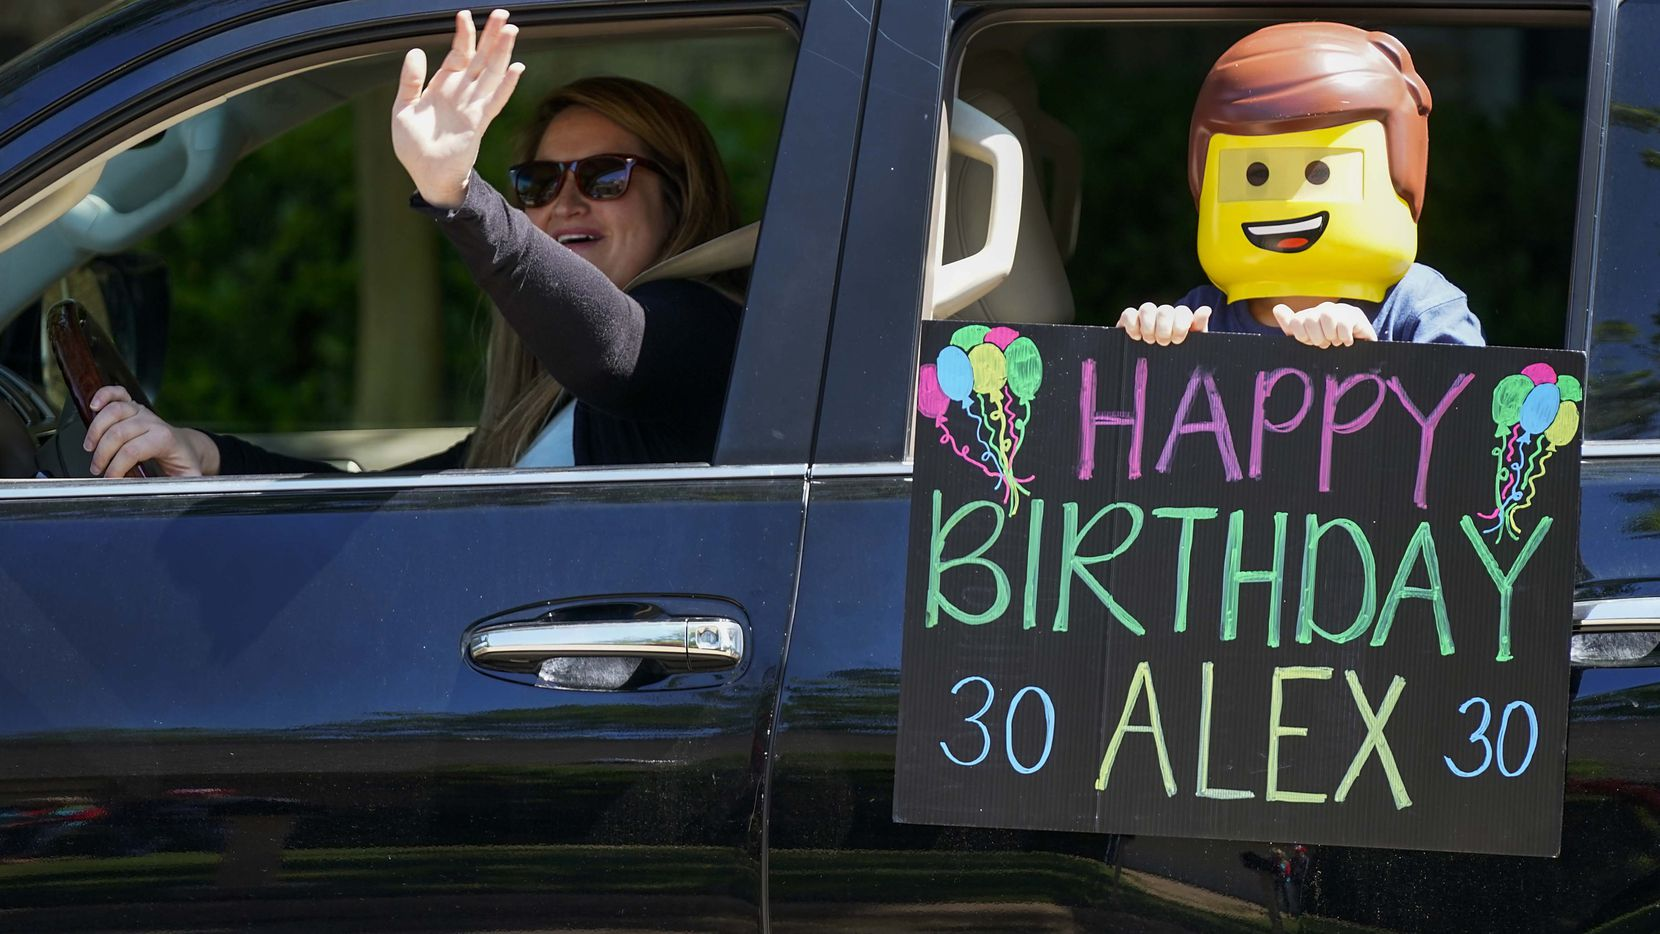 People waved and held signs while driving in a surprise parade of autos passing in front of the home of Alex Patterson to wish him a happy birthday on April 13 in Plano.